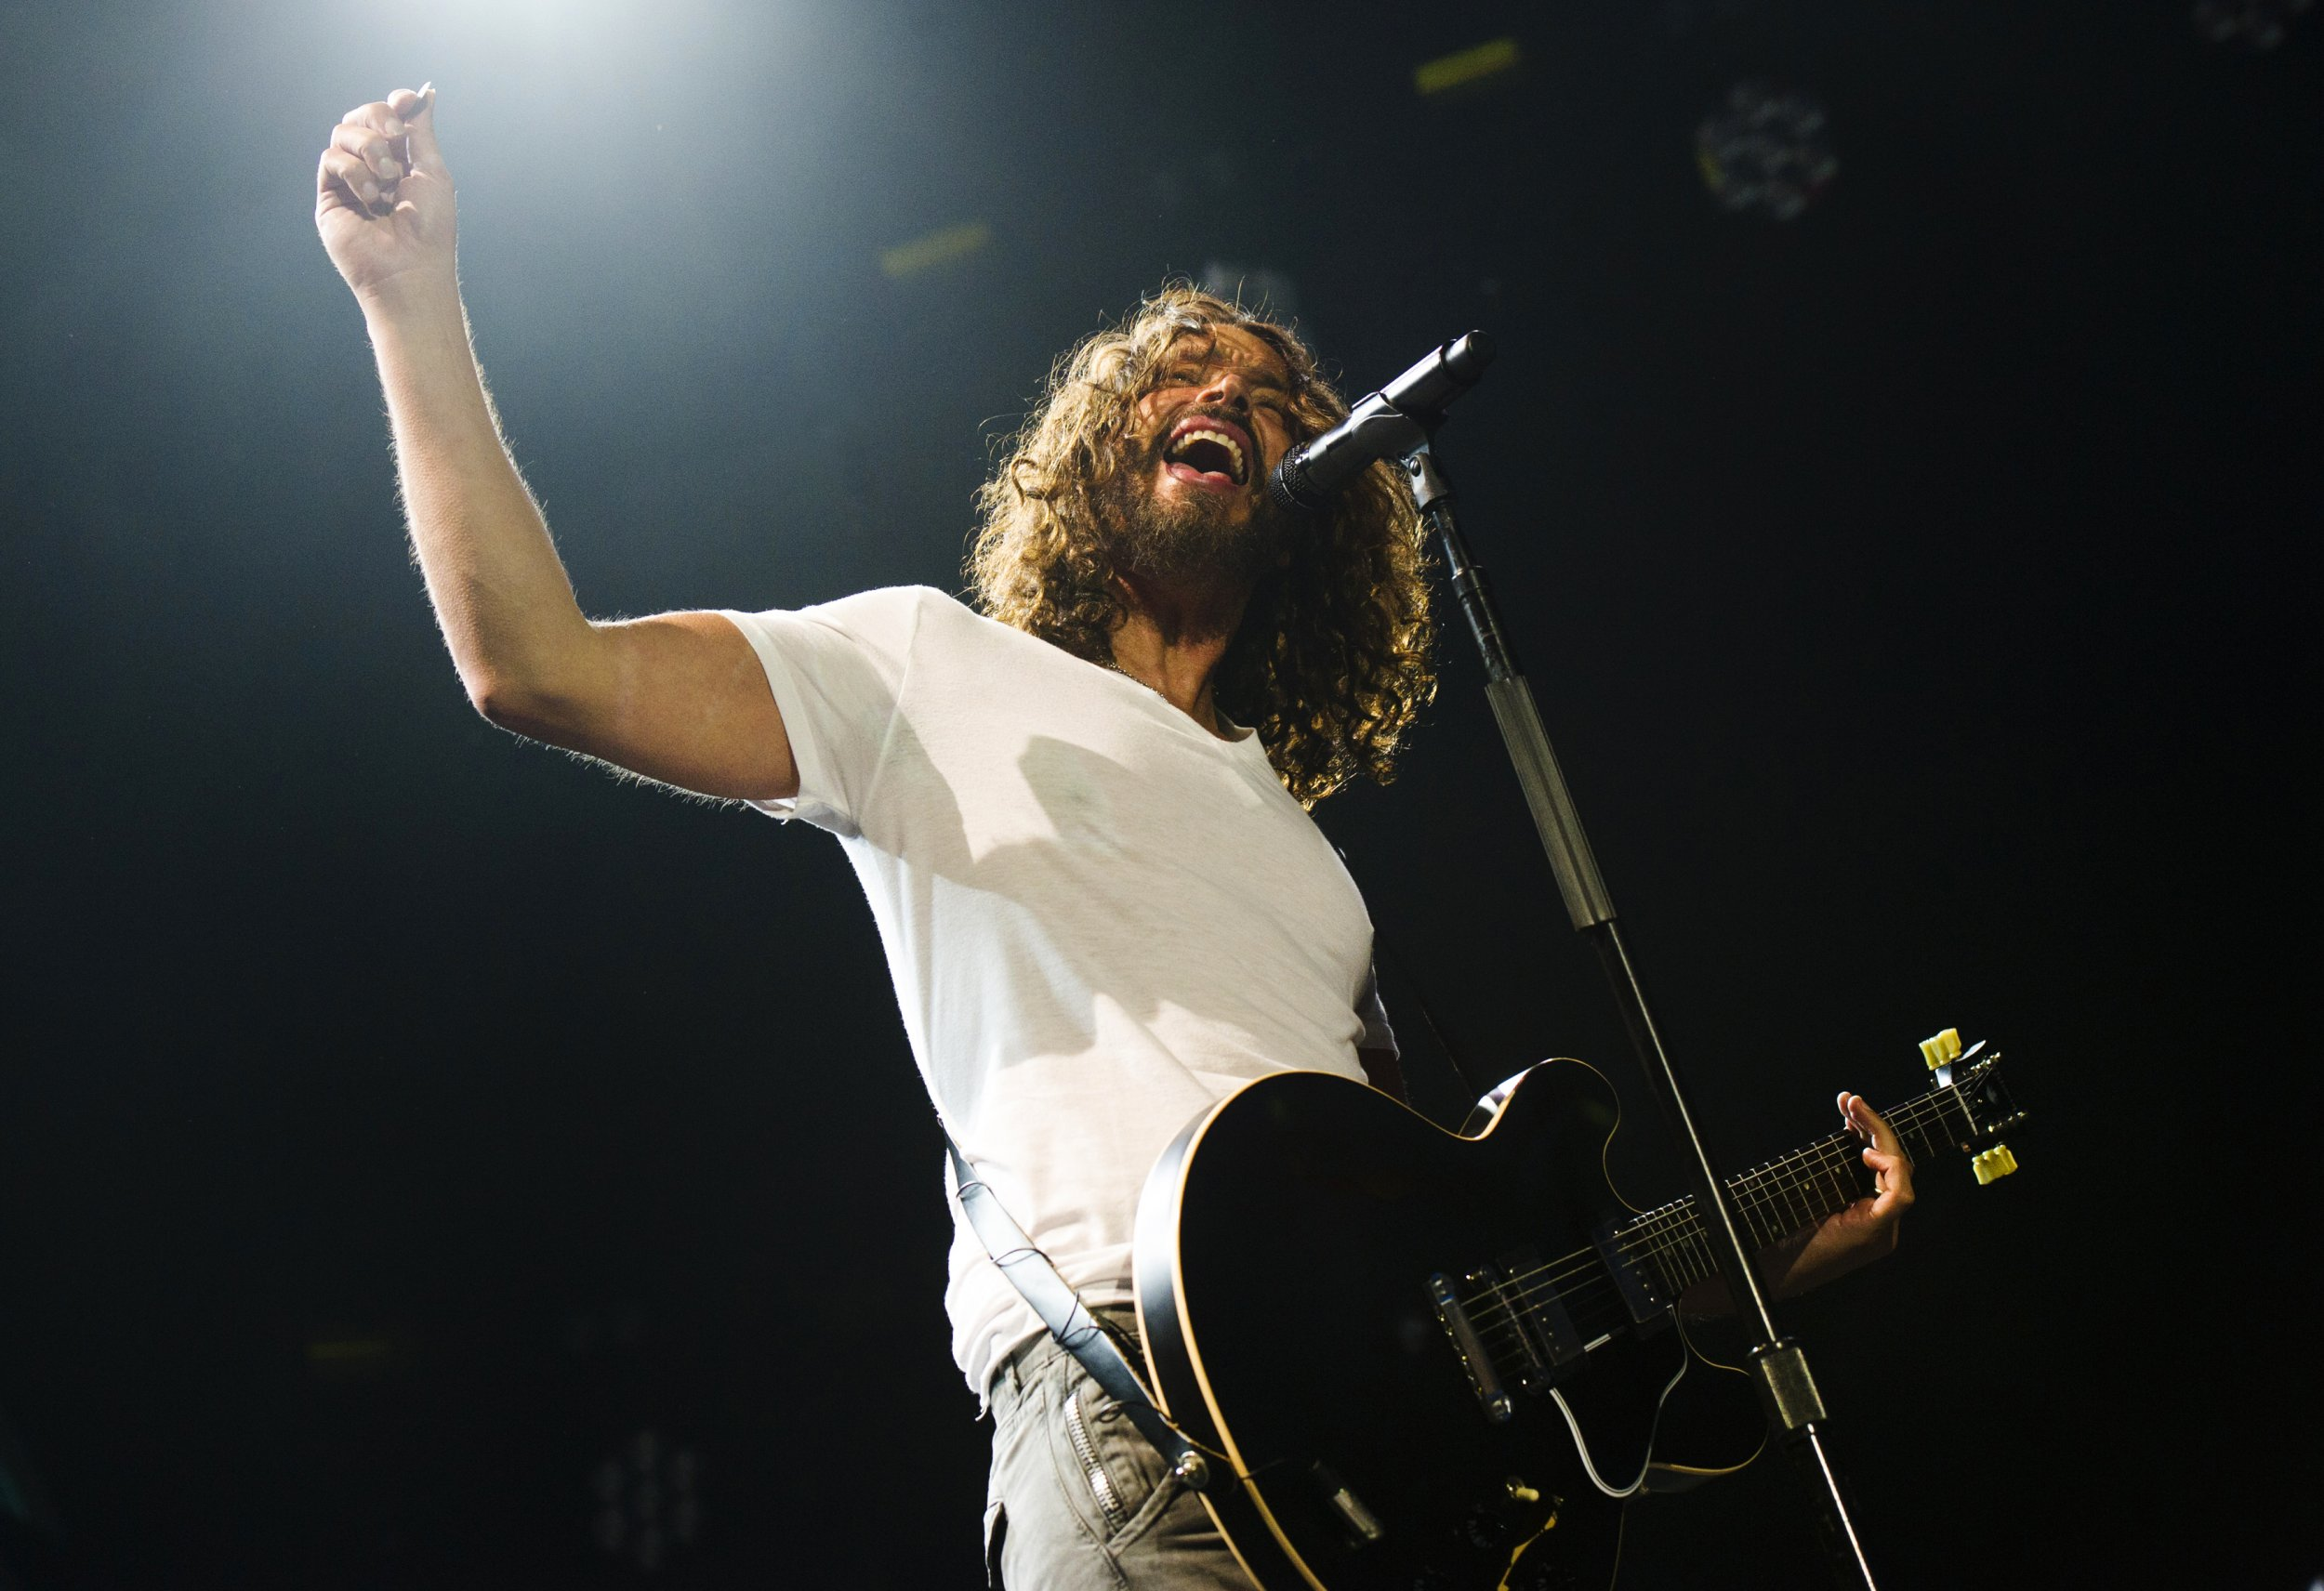 0518_chris_cornell_soundgarden_01